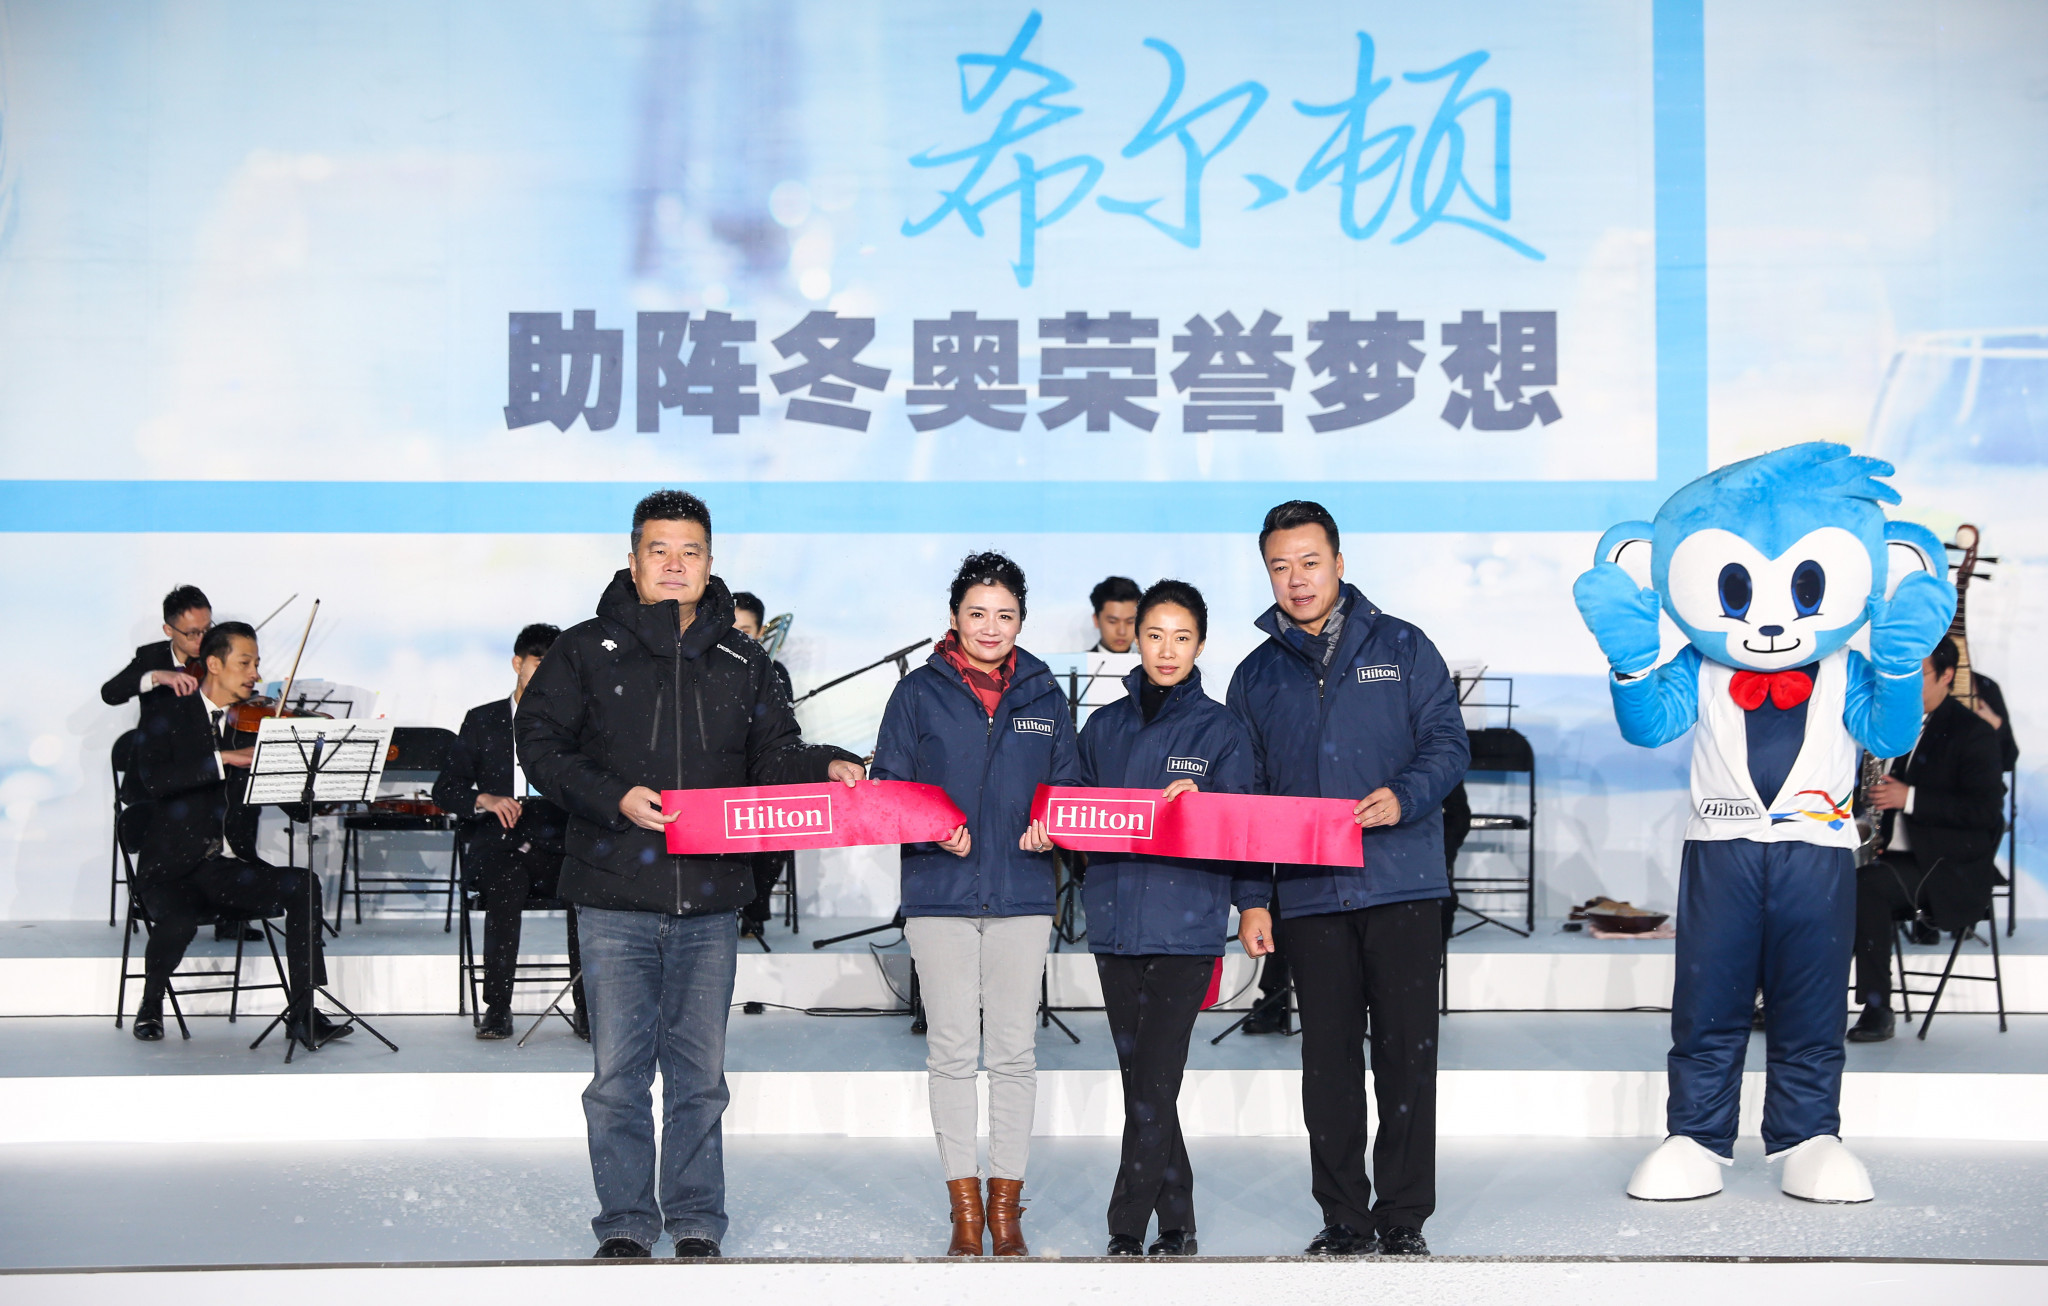 Hilton Hotels launch support for China House at Pyeongchang 2018